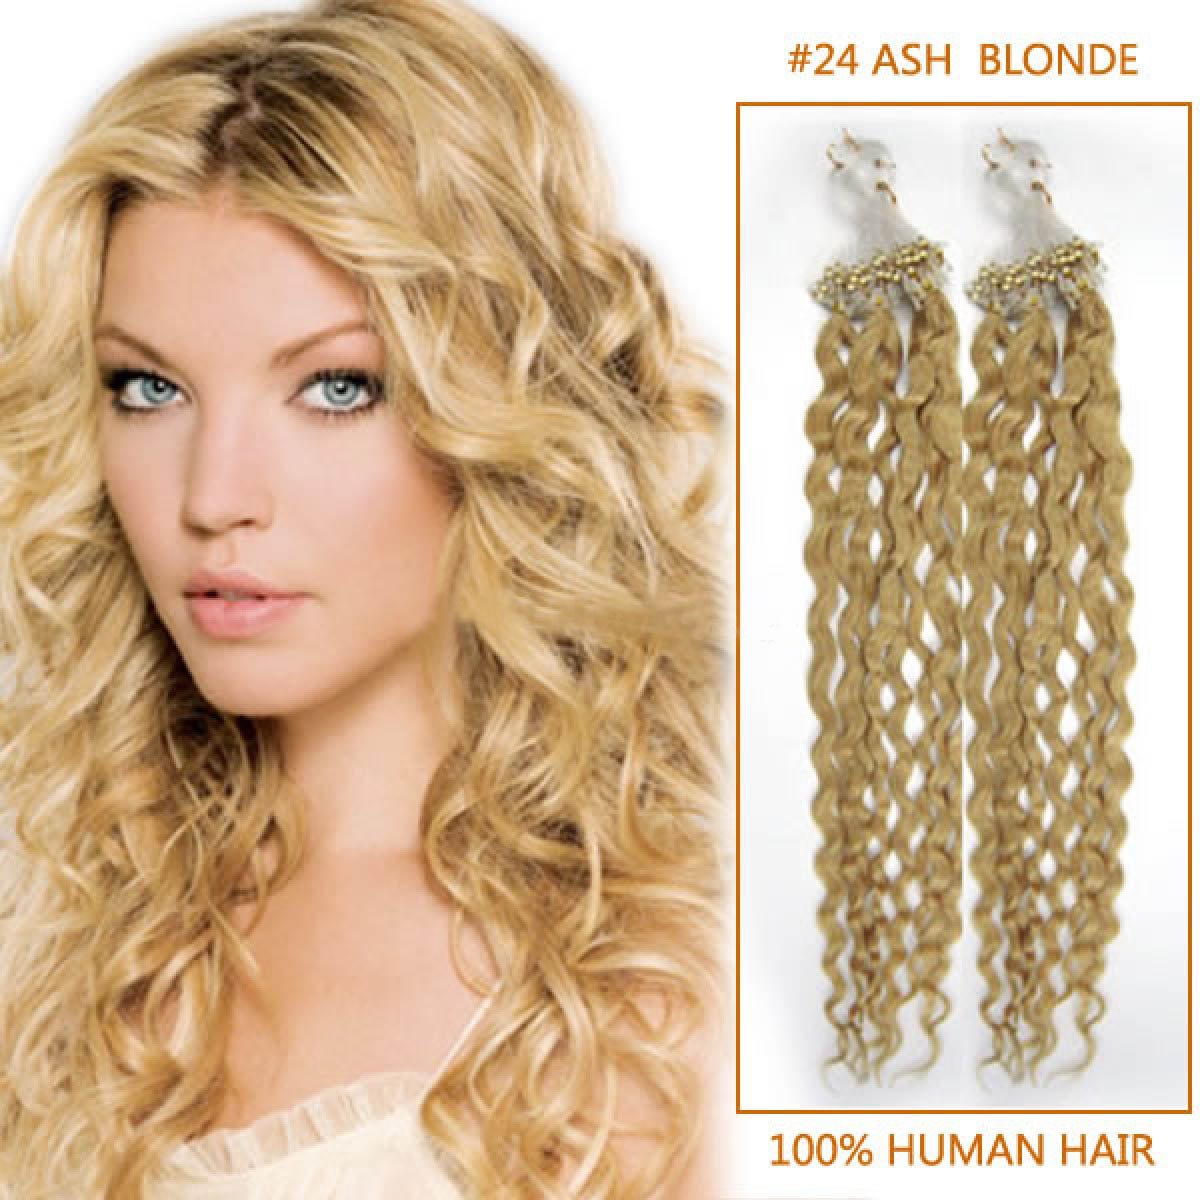 22 Inch Glaring #24 Ash Blonde Curly Micro Loop Hair Extensions 100 Strands